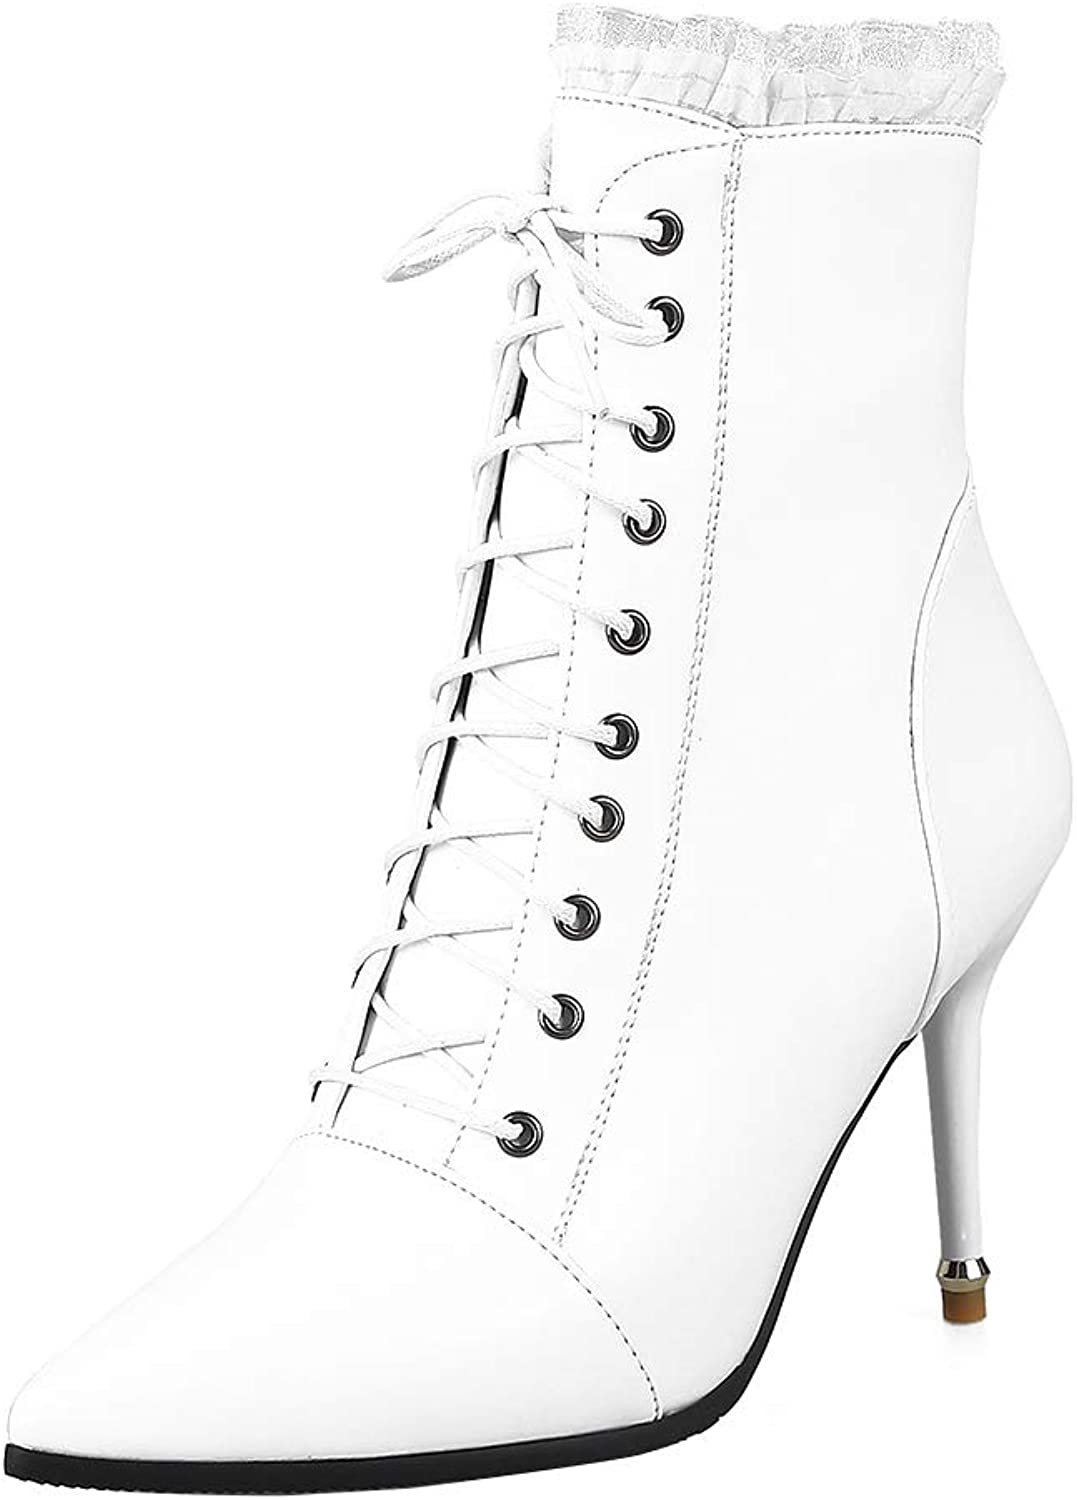 MAYPIE Women's Fashion Pointed Toe Stiletto Booties High Heel Zipper Mid Calf Boots with Lace